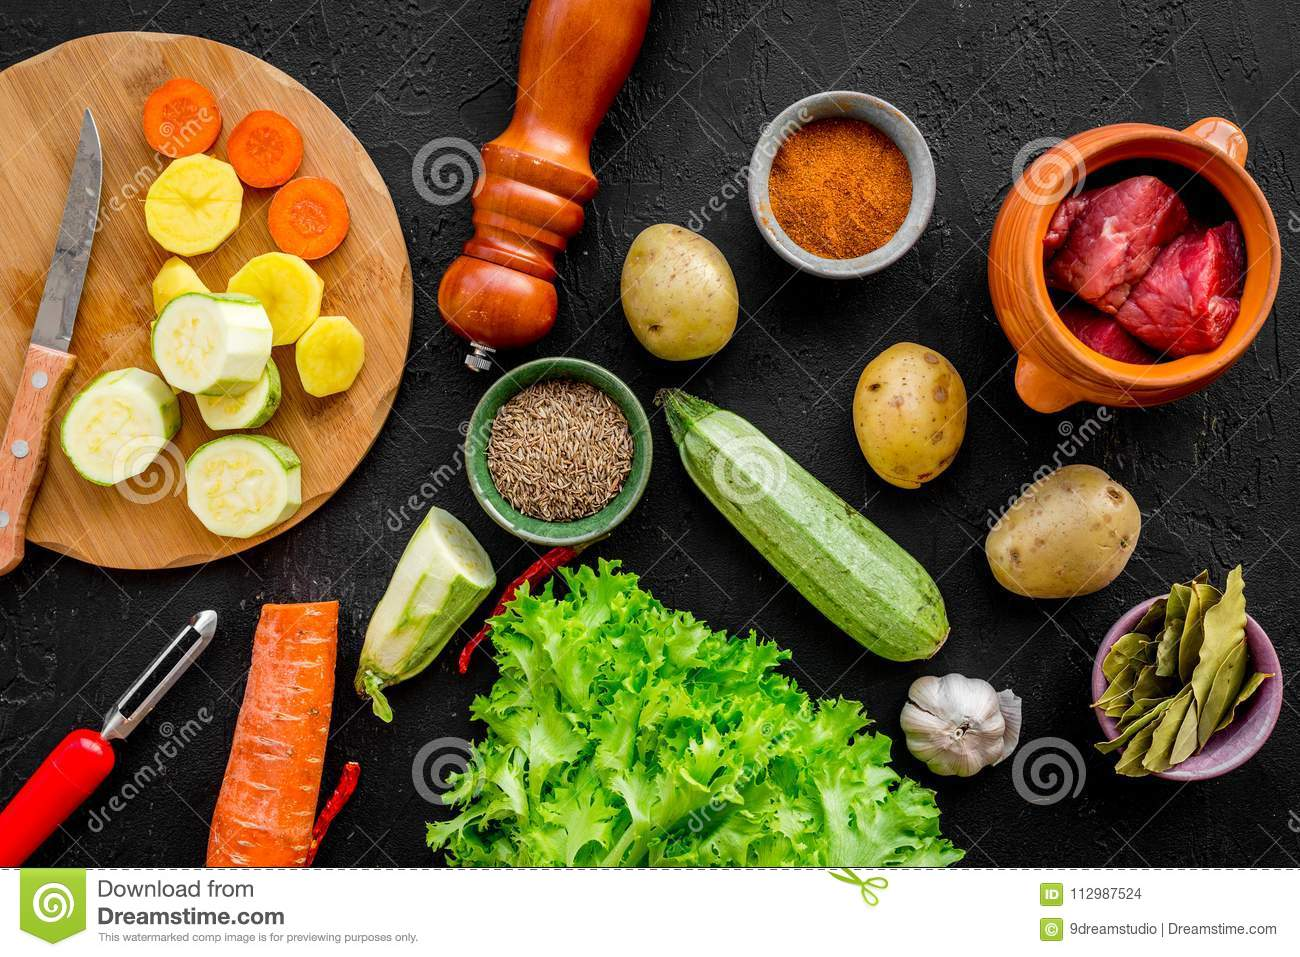 Ingredients for vegetable ragout cooking on stone table background top view